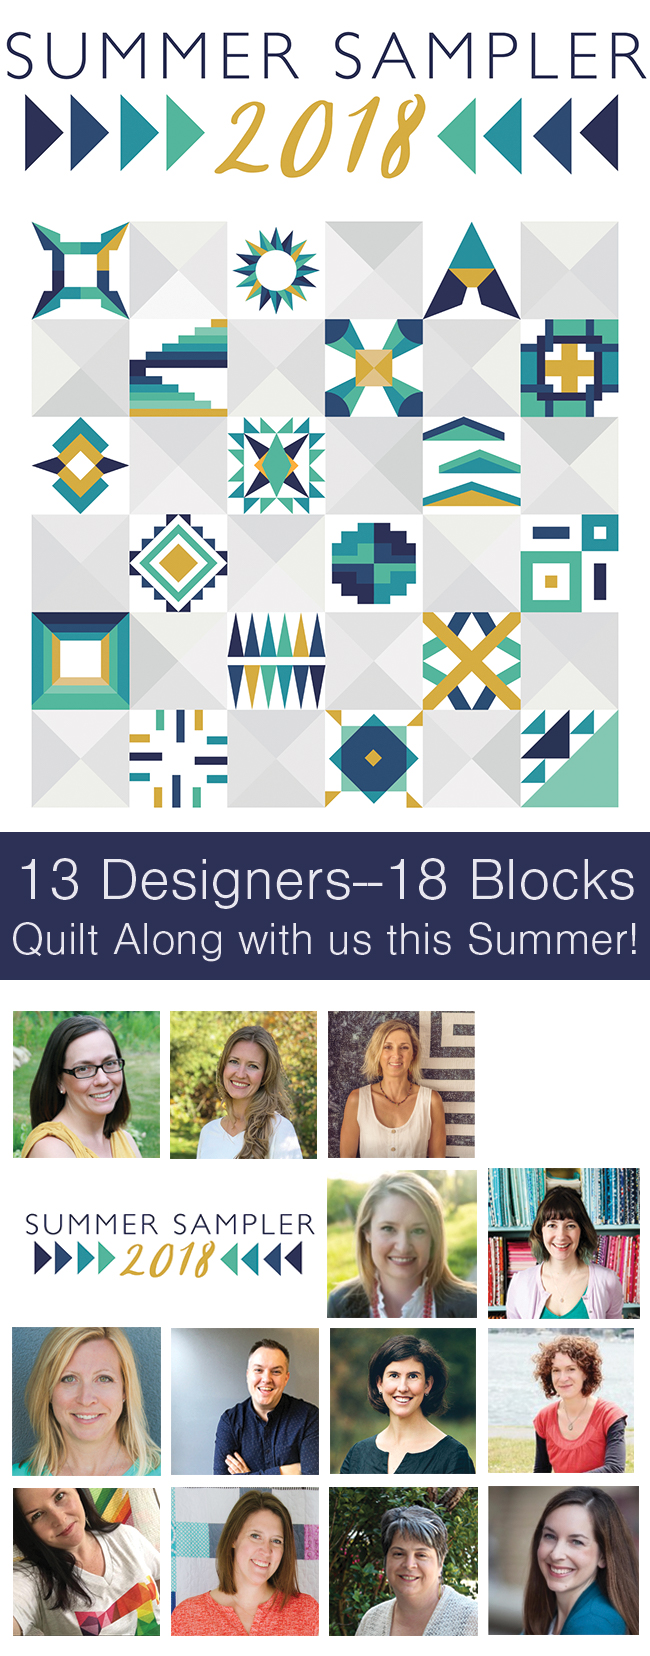 Summer Sampler 2018 Quilt Along